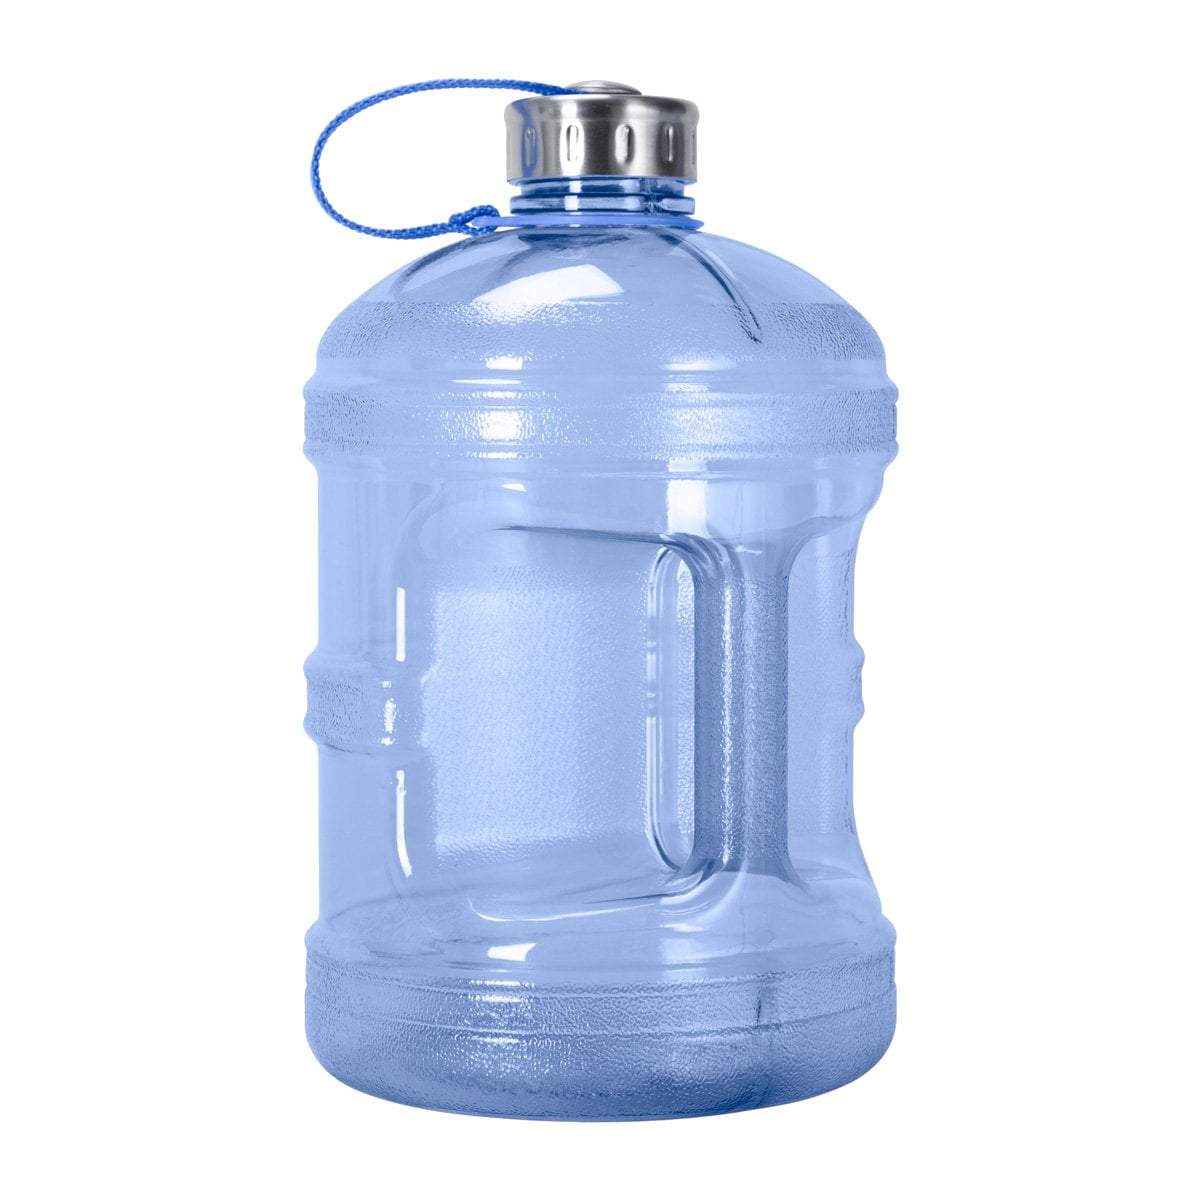 GEO Bottles Dark Blue 1 Gallon BPA FREE Bottle w/ Stainless Steel Cap